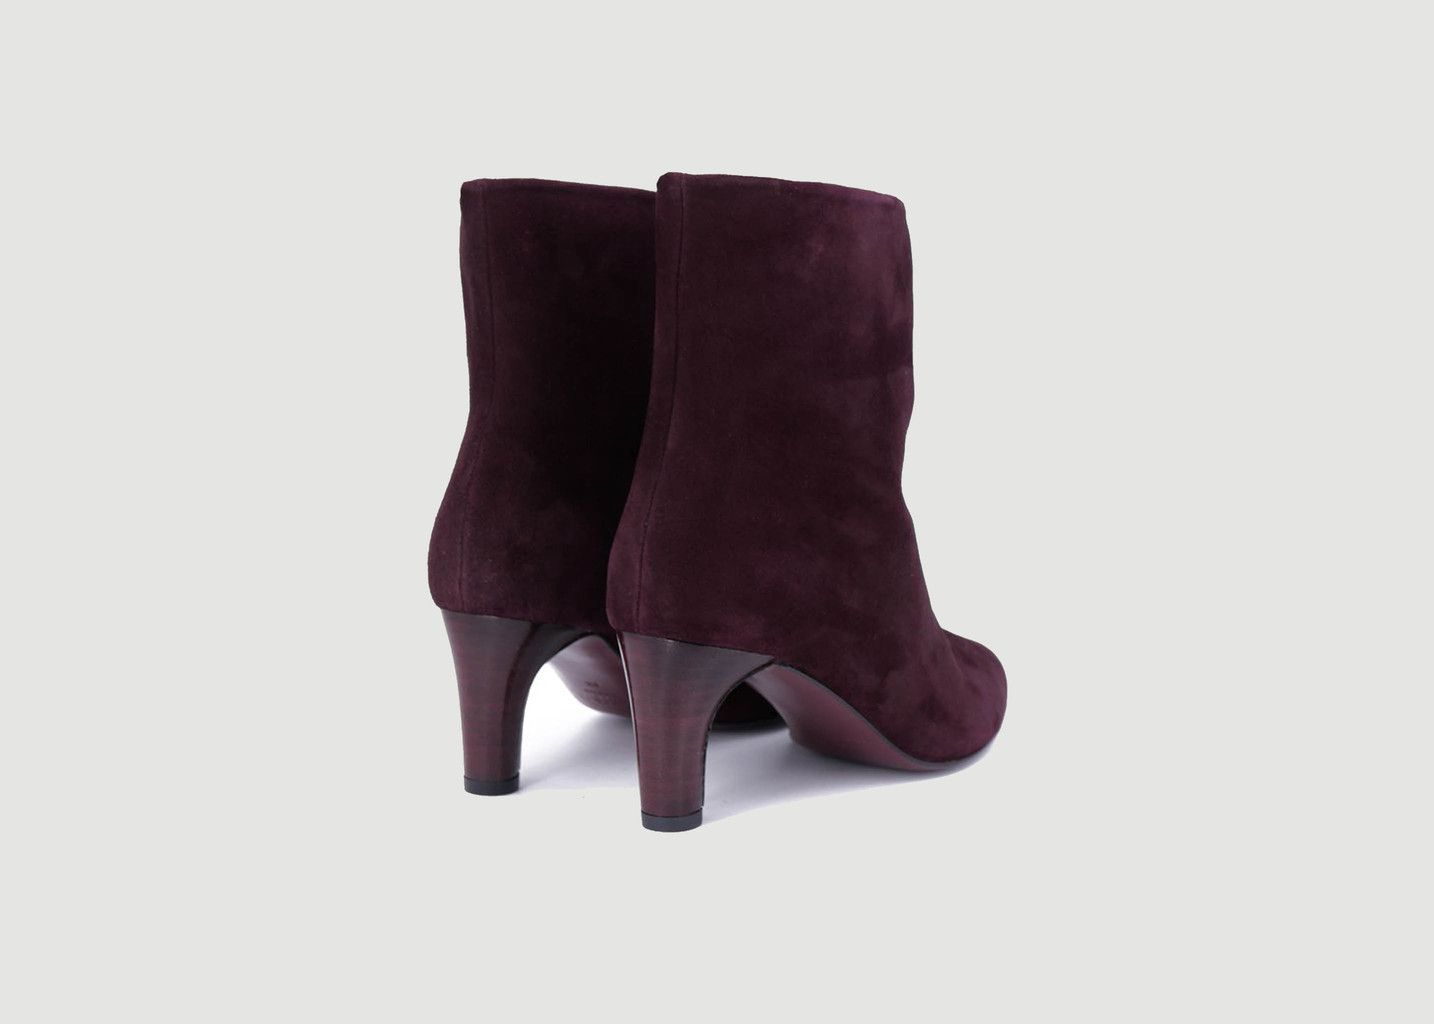 Bottines en cuir velours Ines - Avril Gau